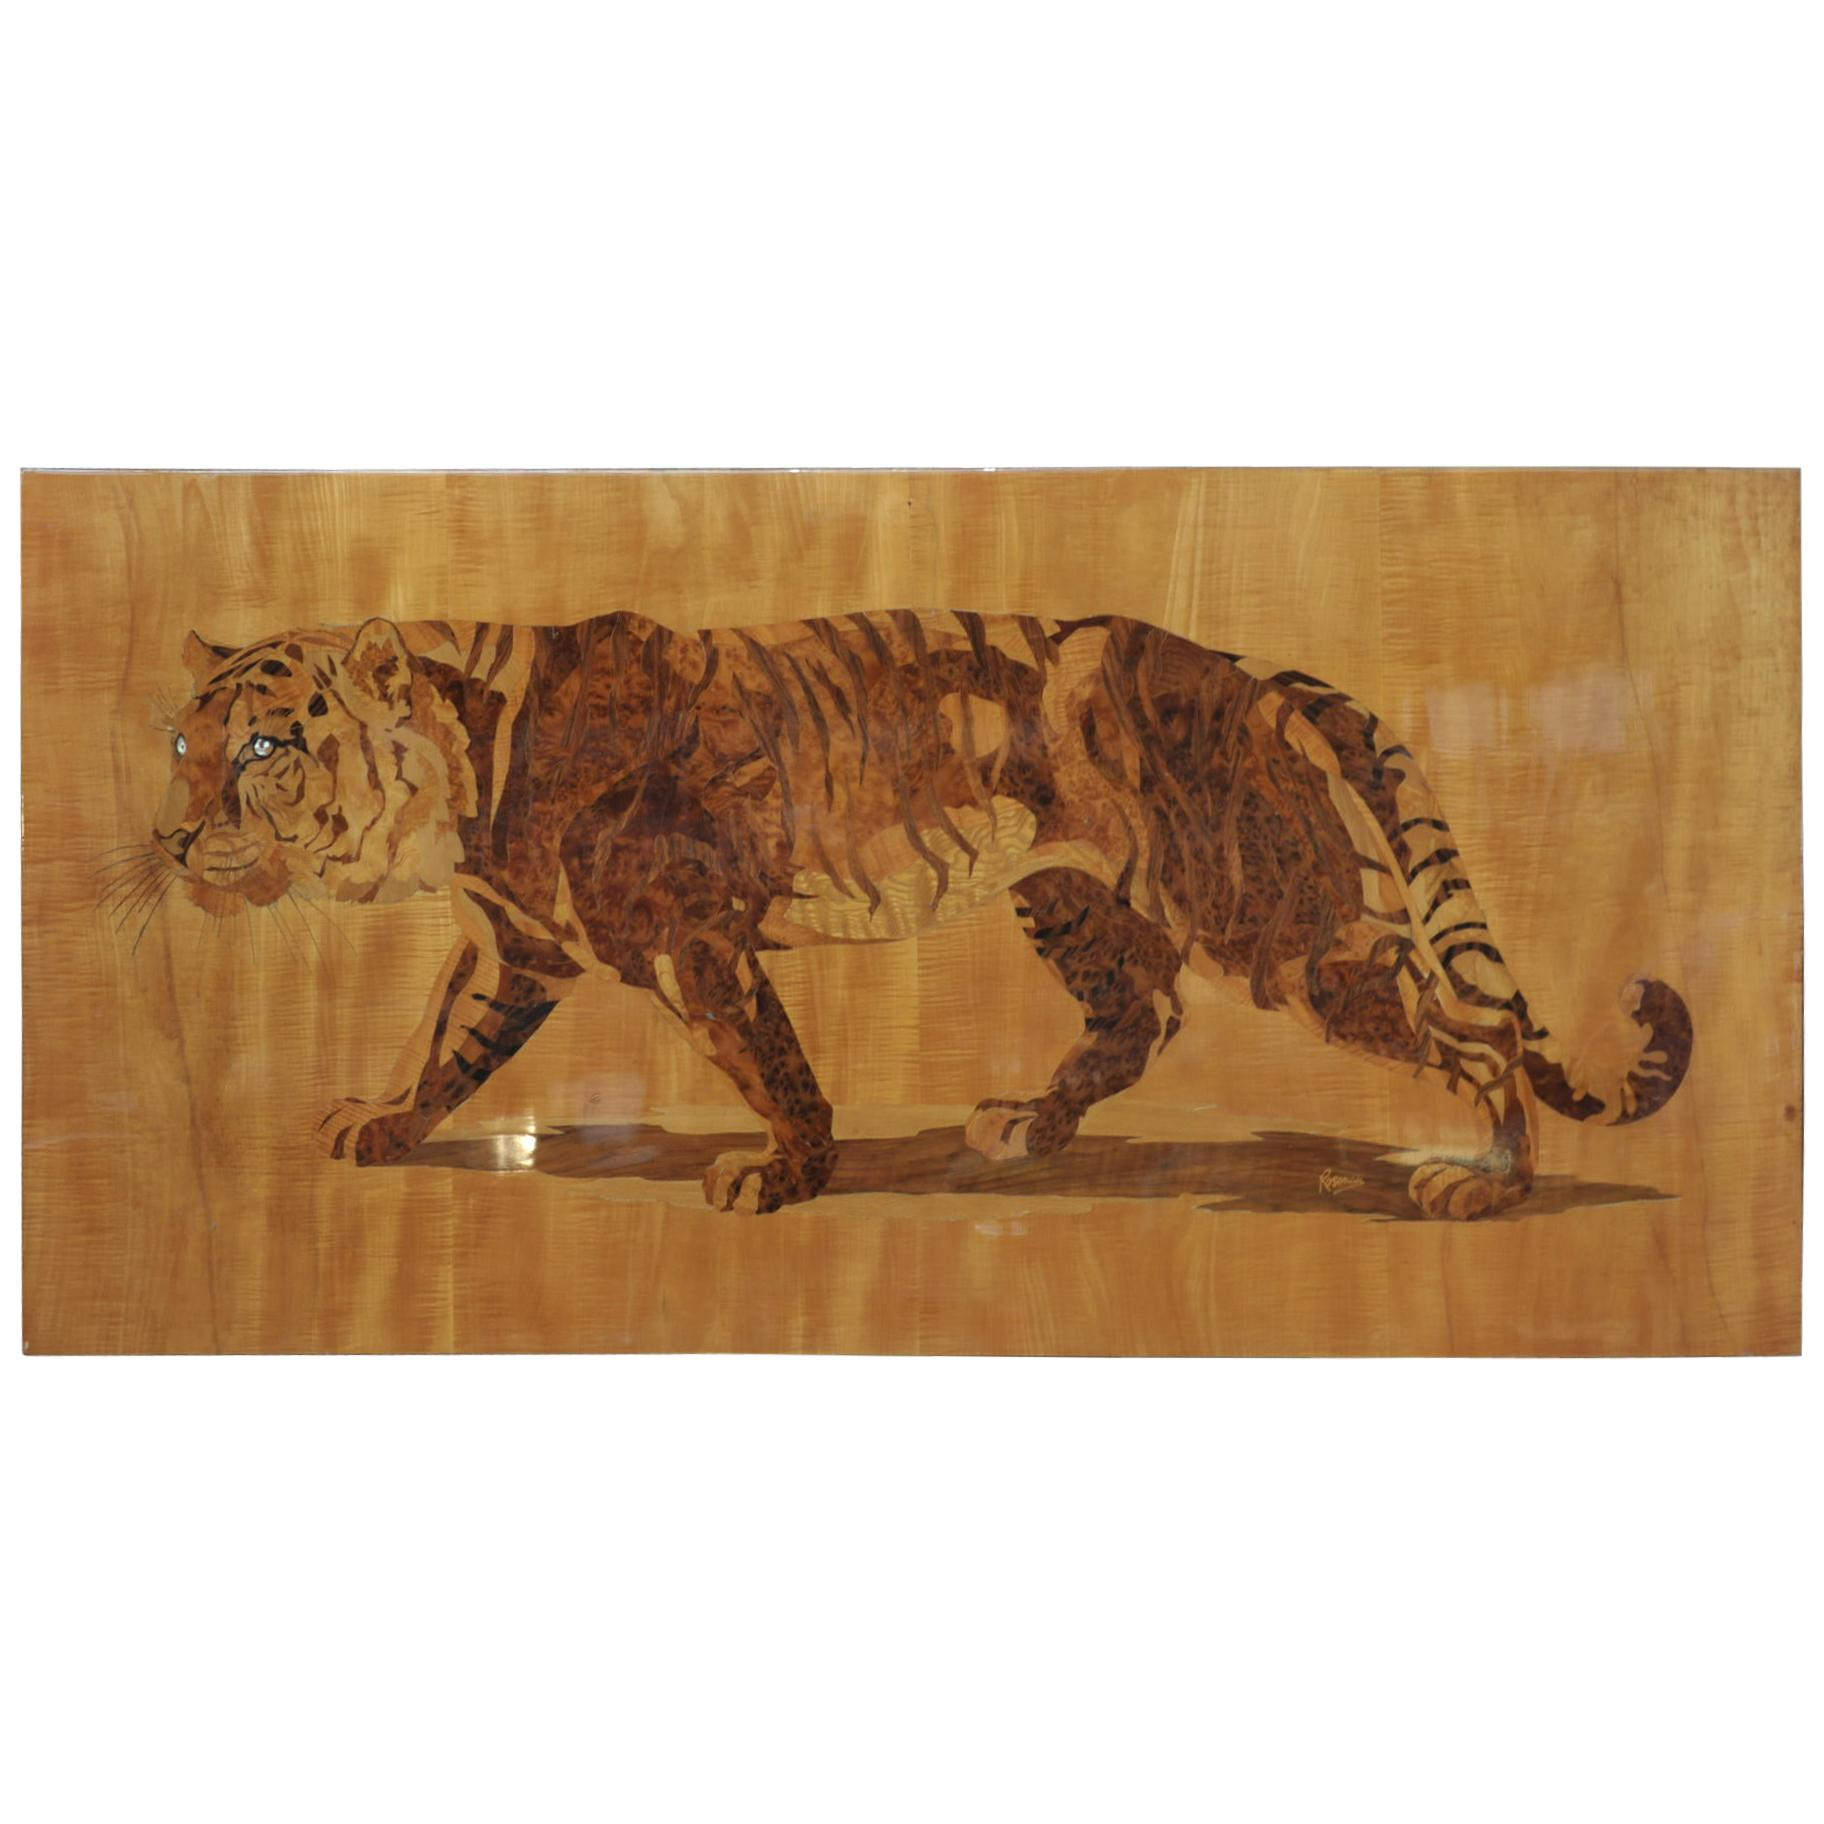 Bengal Tiger in Marquetry Wood Pannel Signed Pierre Rosenau, circa 1930